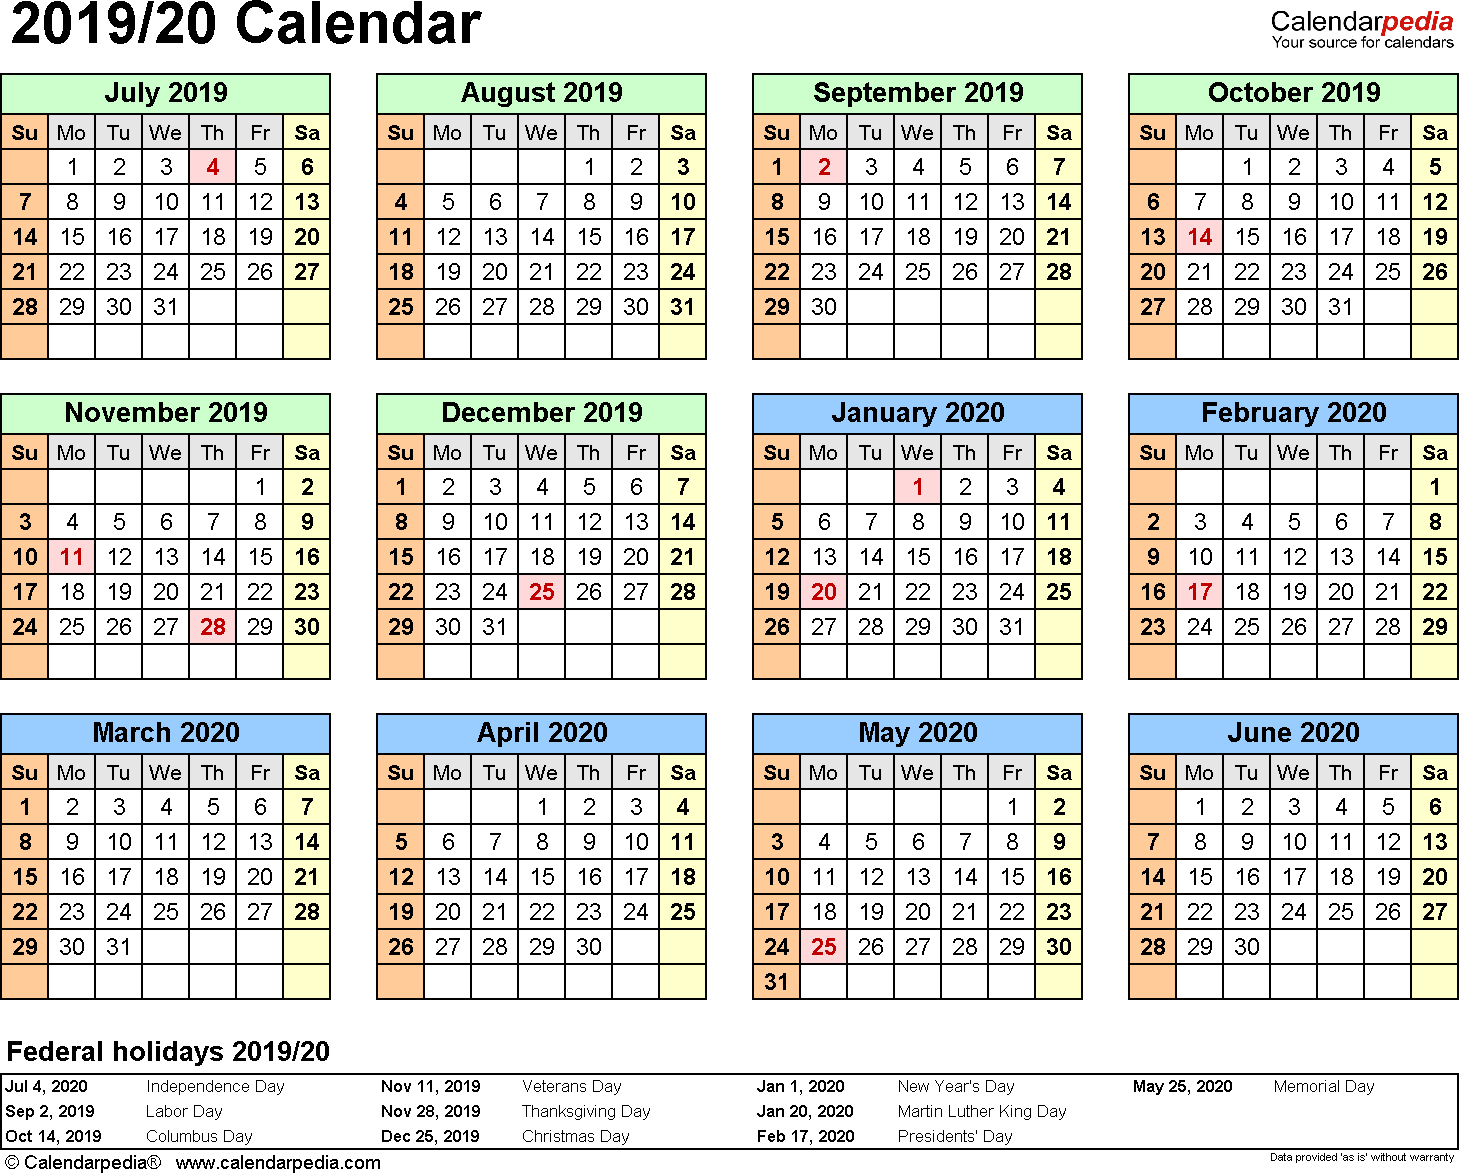 Split Year Calendar 2019/20 (July To June) - Word Templates throughout 1 Page Calendar 2019-2020 With Major Holidays